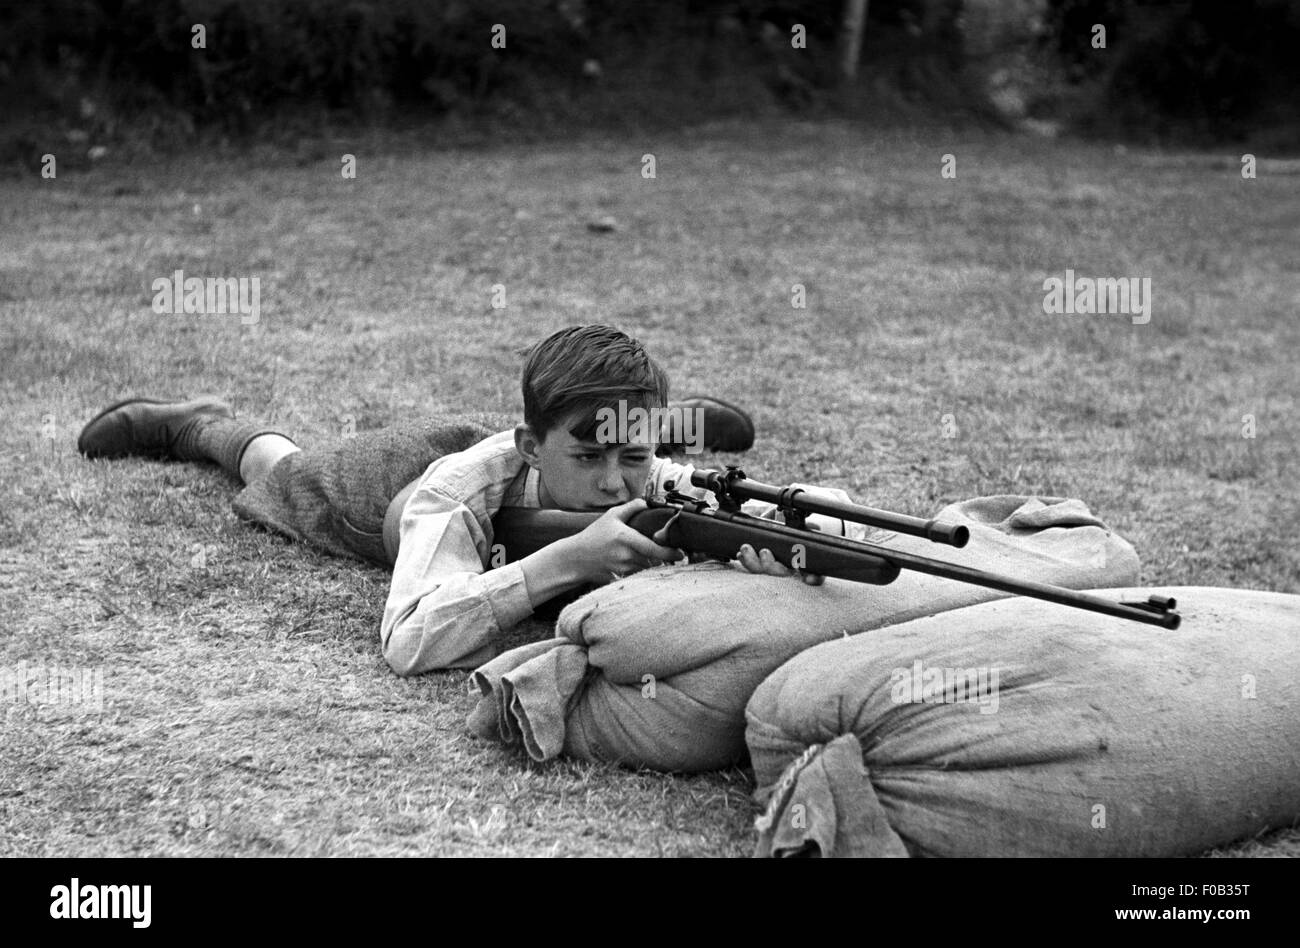 A young boy taking aim with his rifle as he rests on sand bags on the ground. - Stock Image